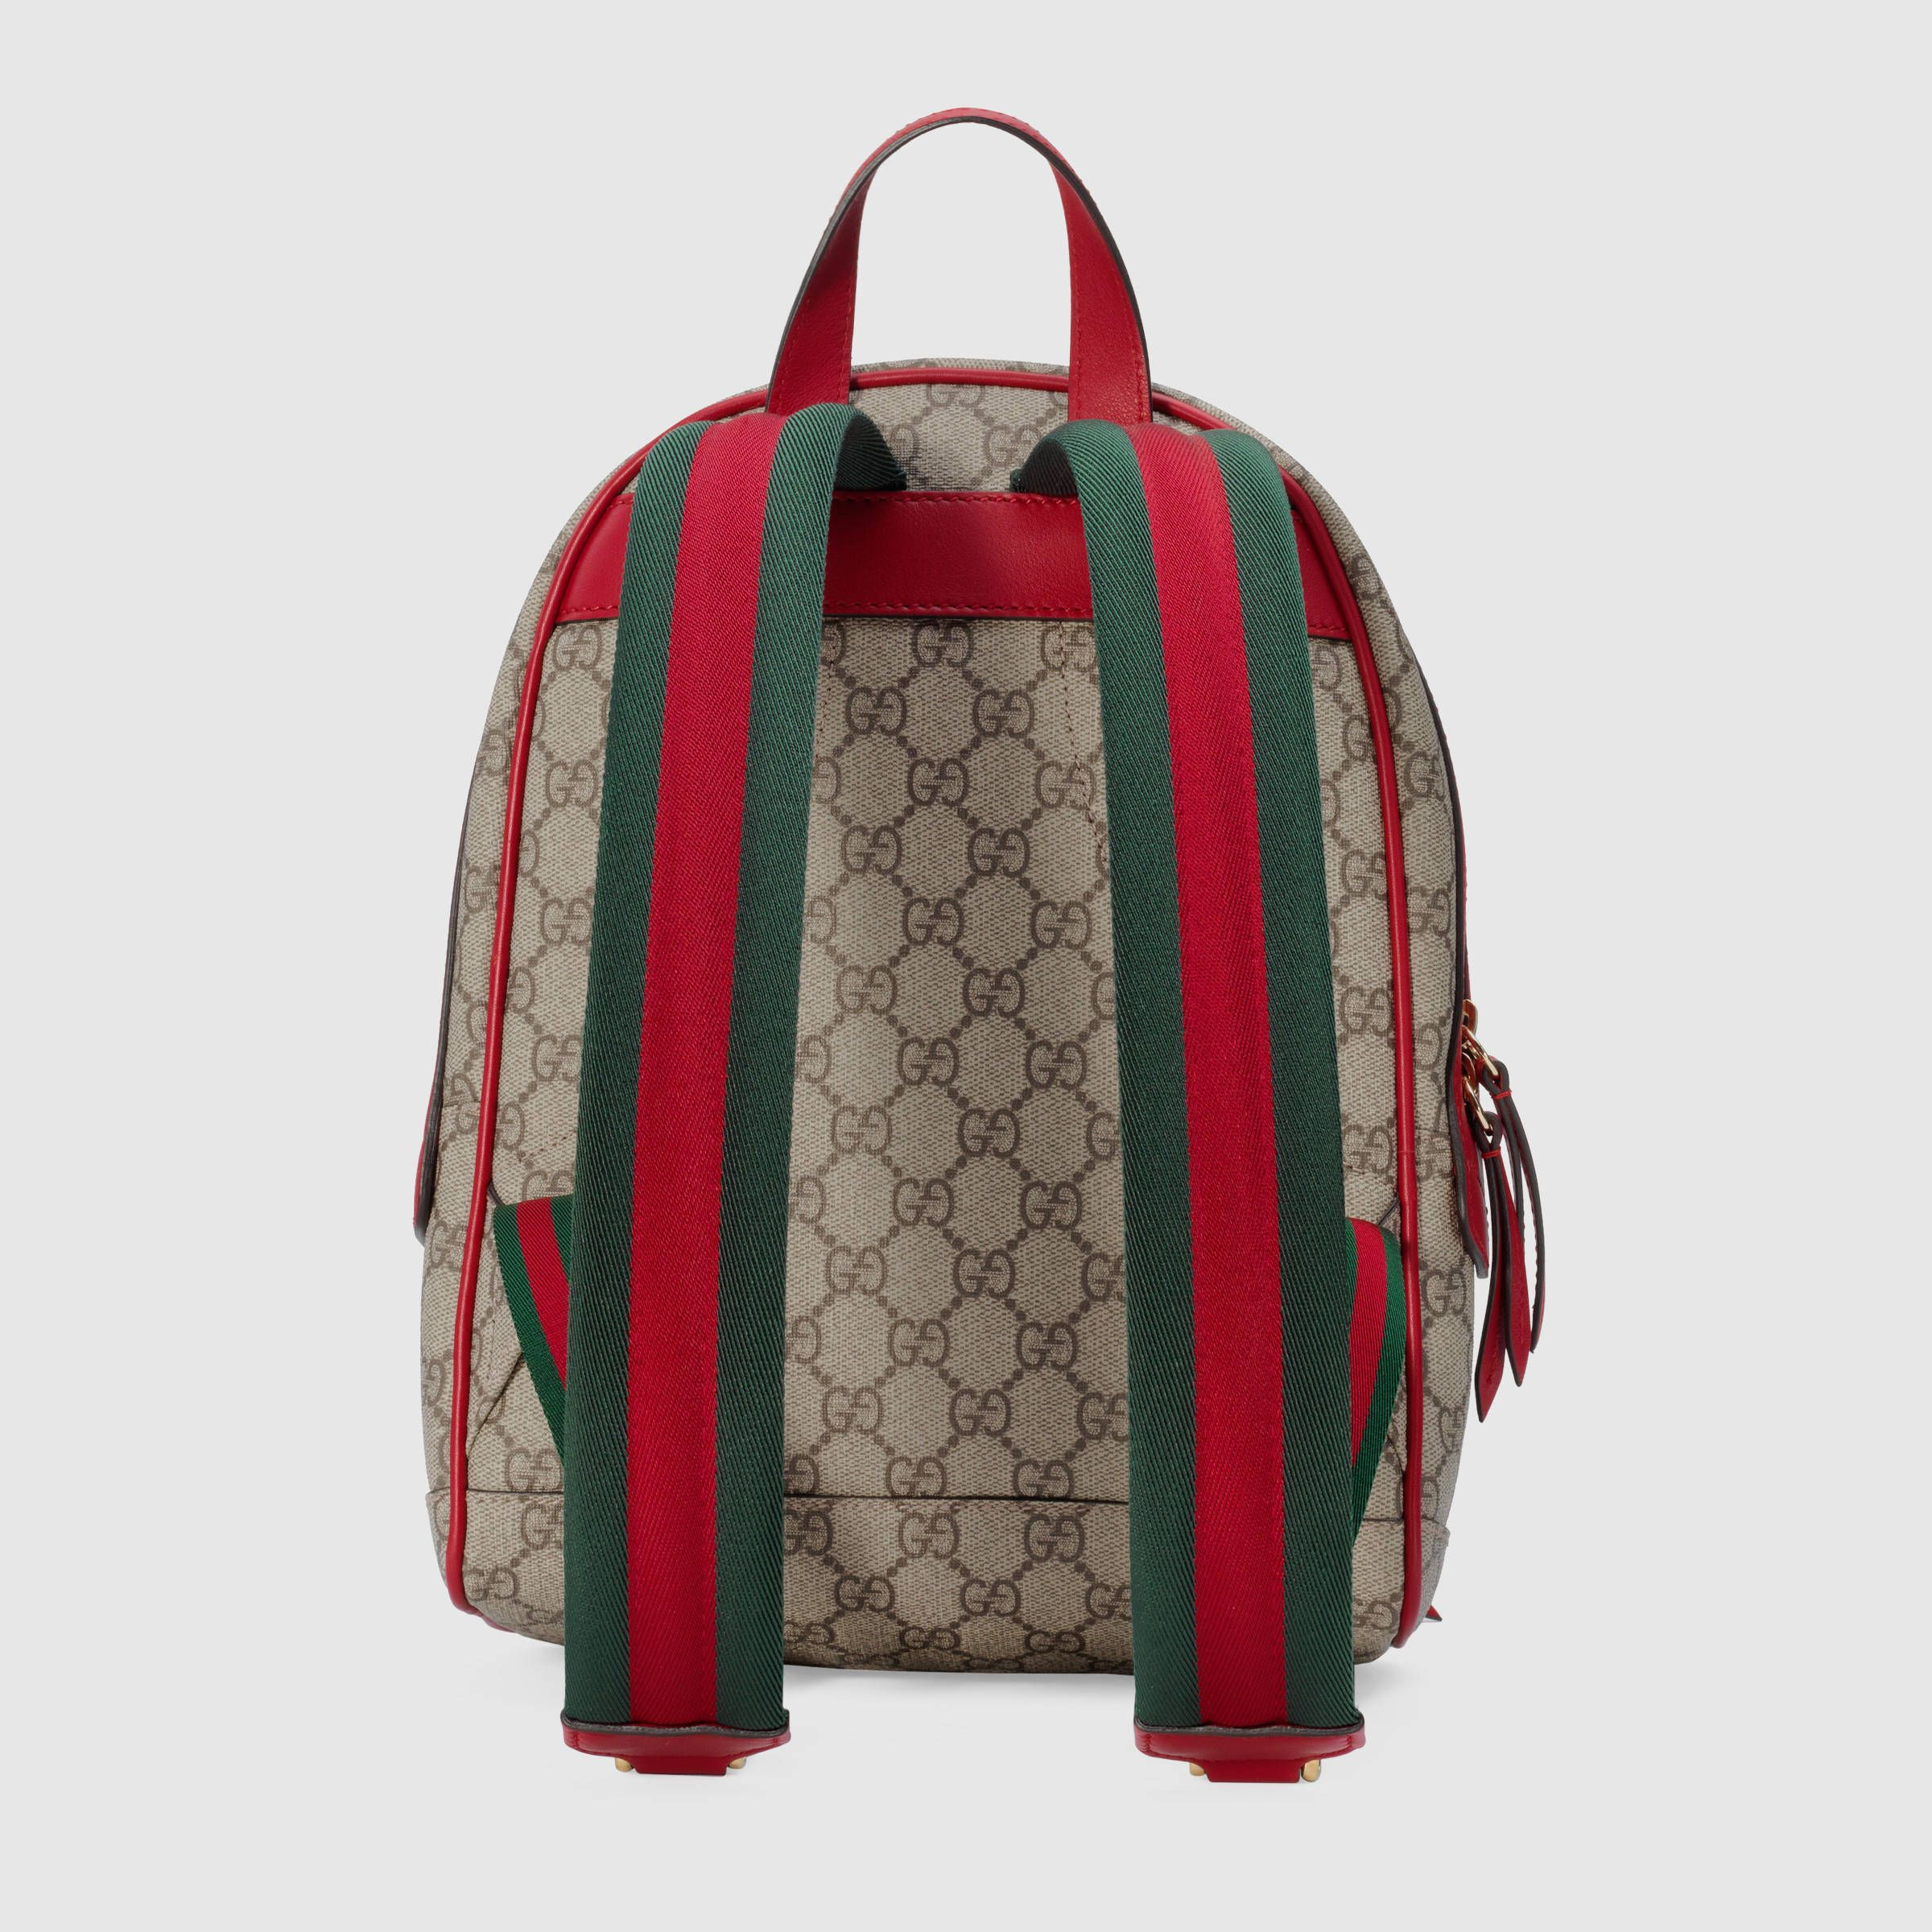 2bacdee8ff19 Limited Edition GG Supreme backpack - Gucci Women's Backpacks ...